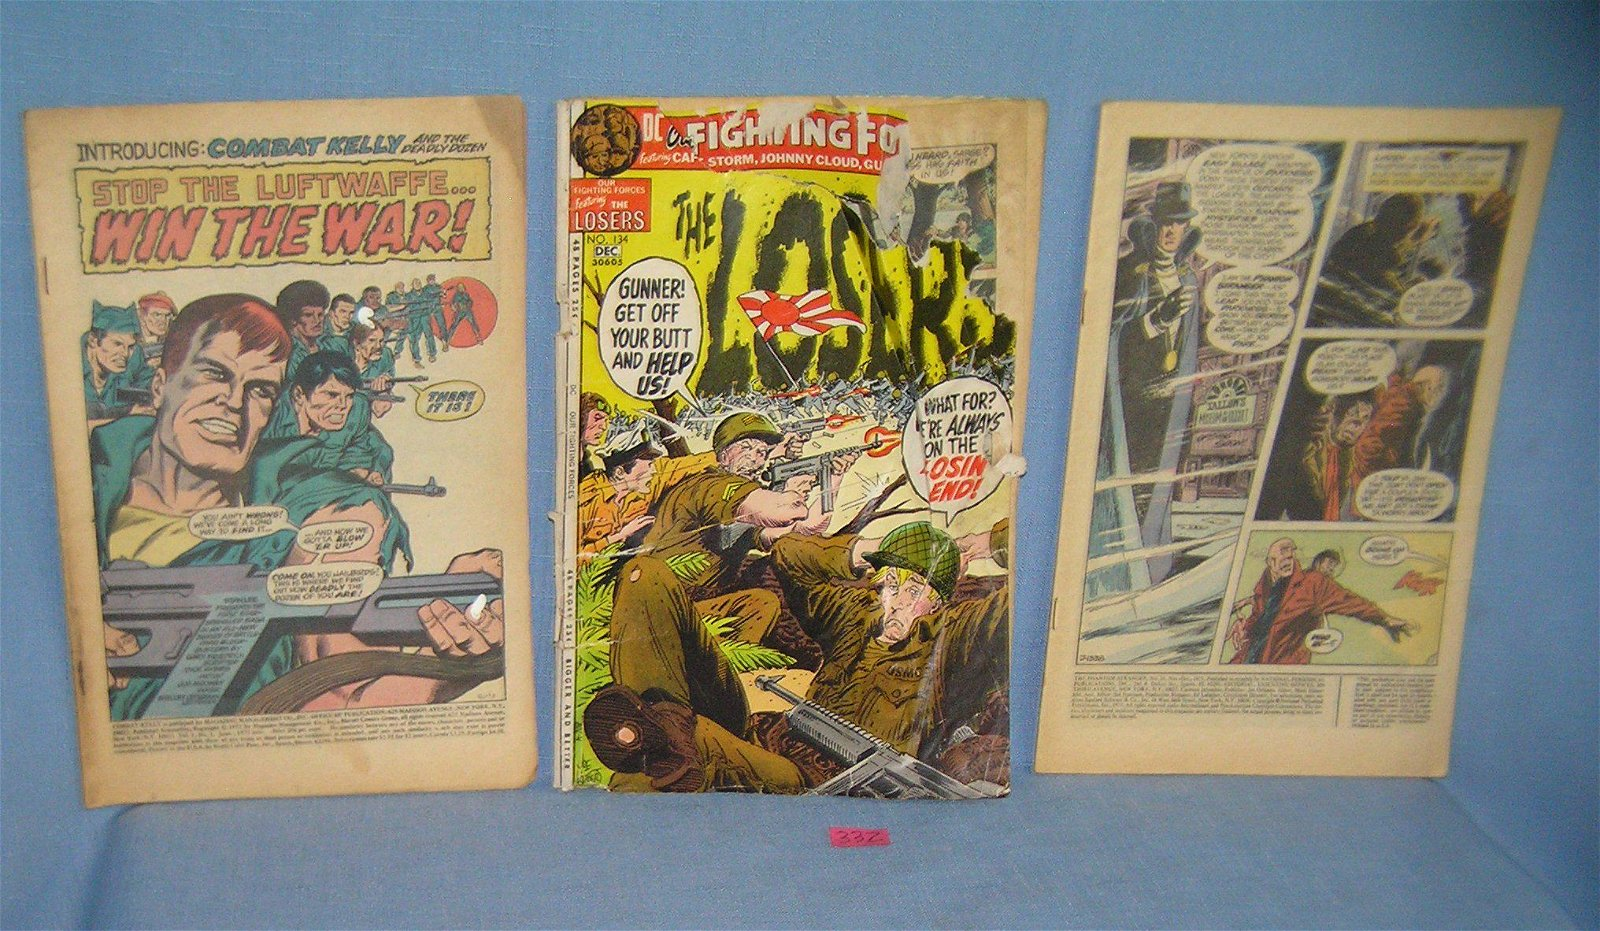 Group of 3 early comics